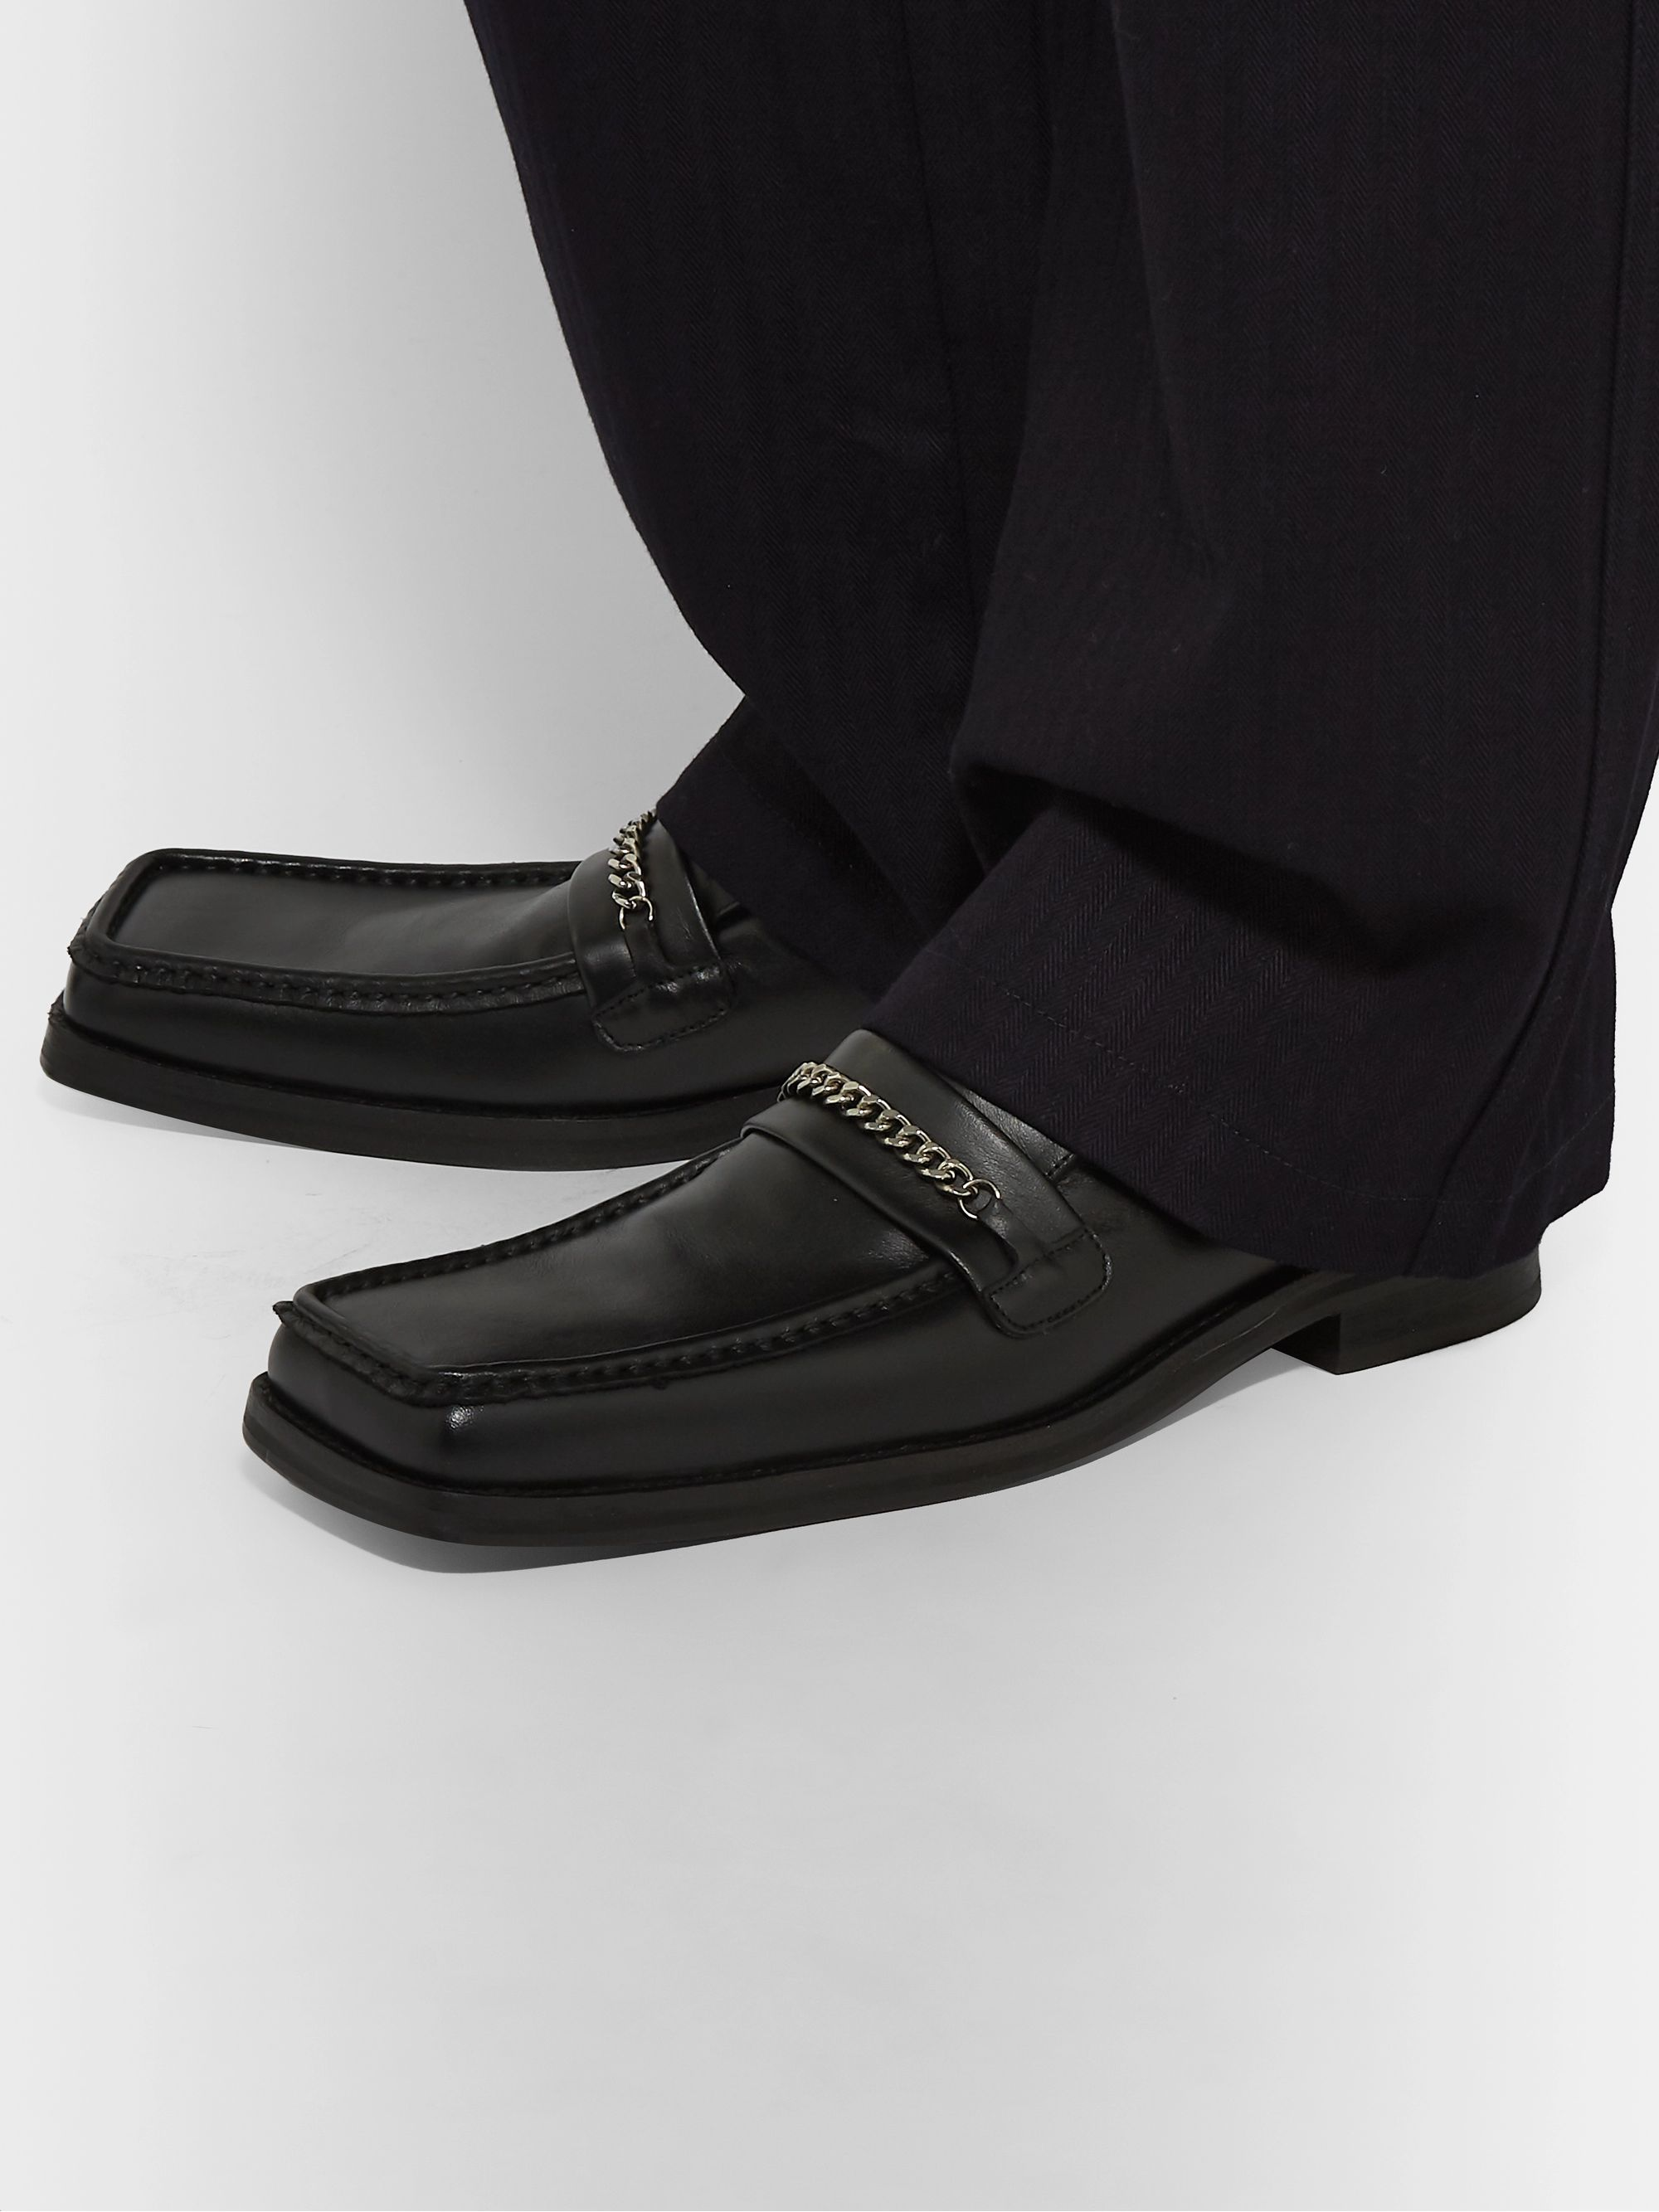 Martine Rose Chain-Trimmed Leather Loafers